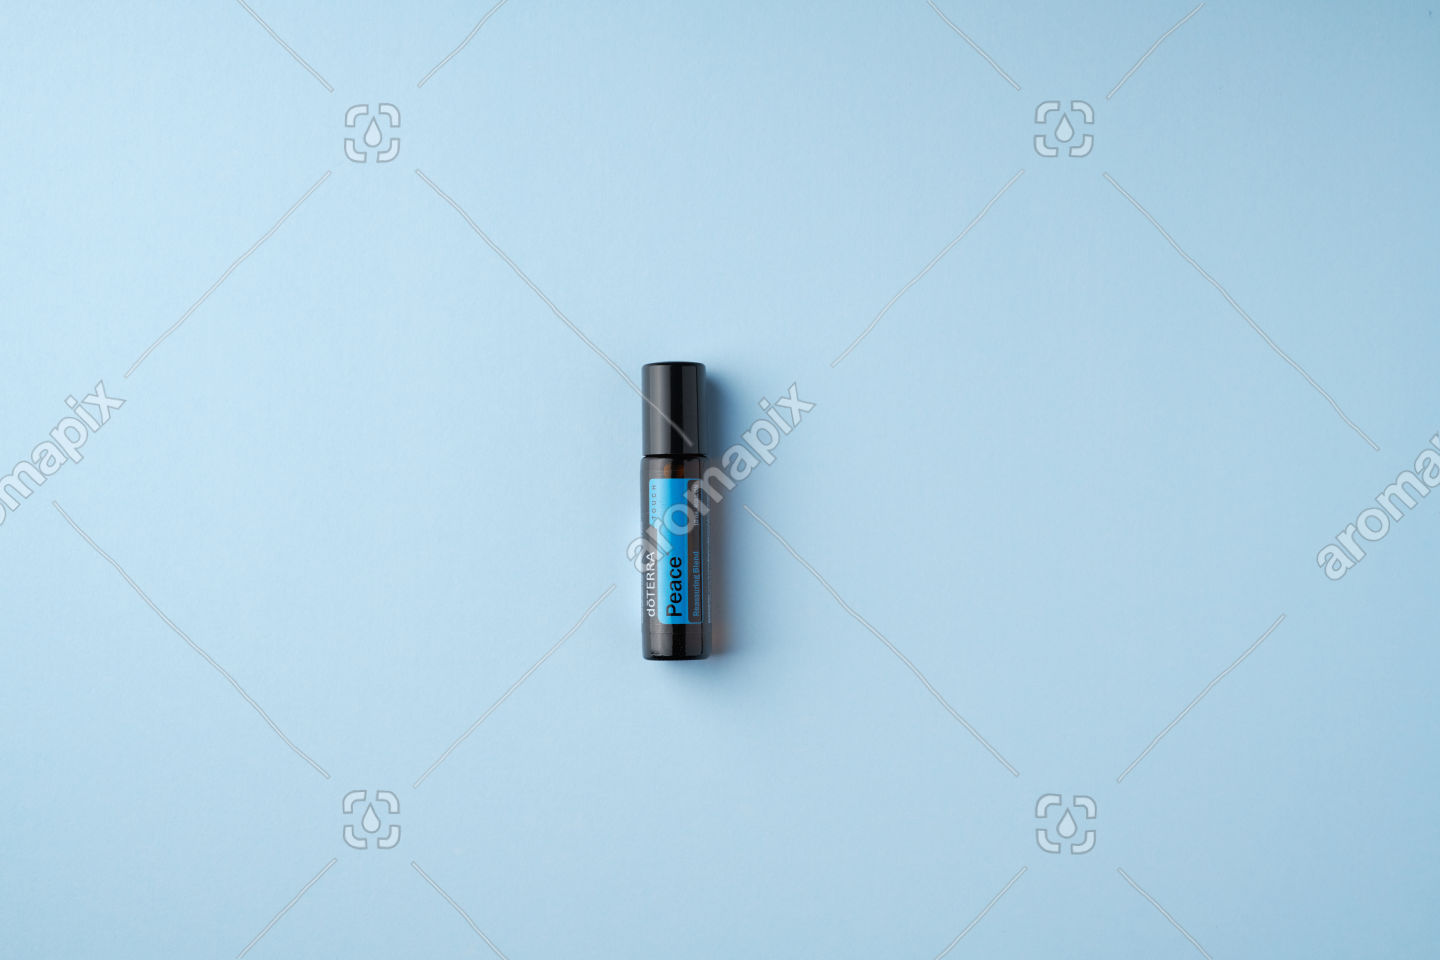 doTERRA Peace Touch on light blue